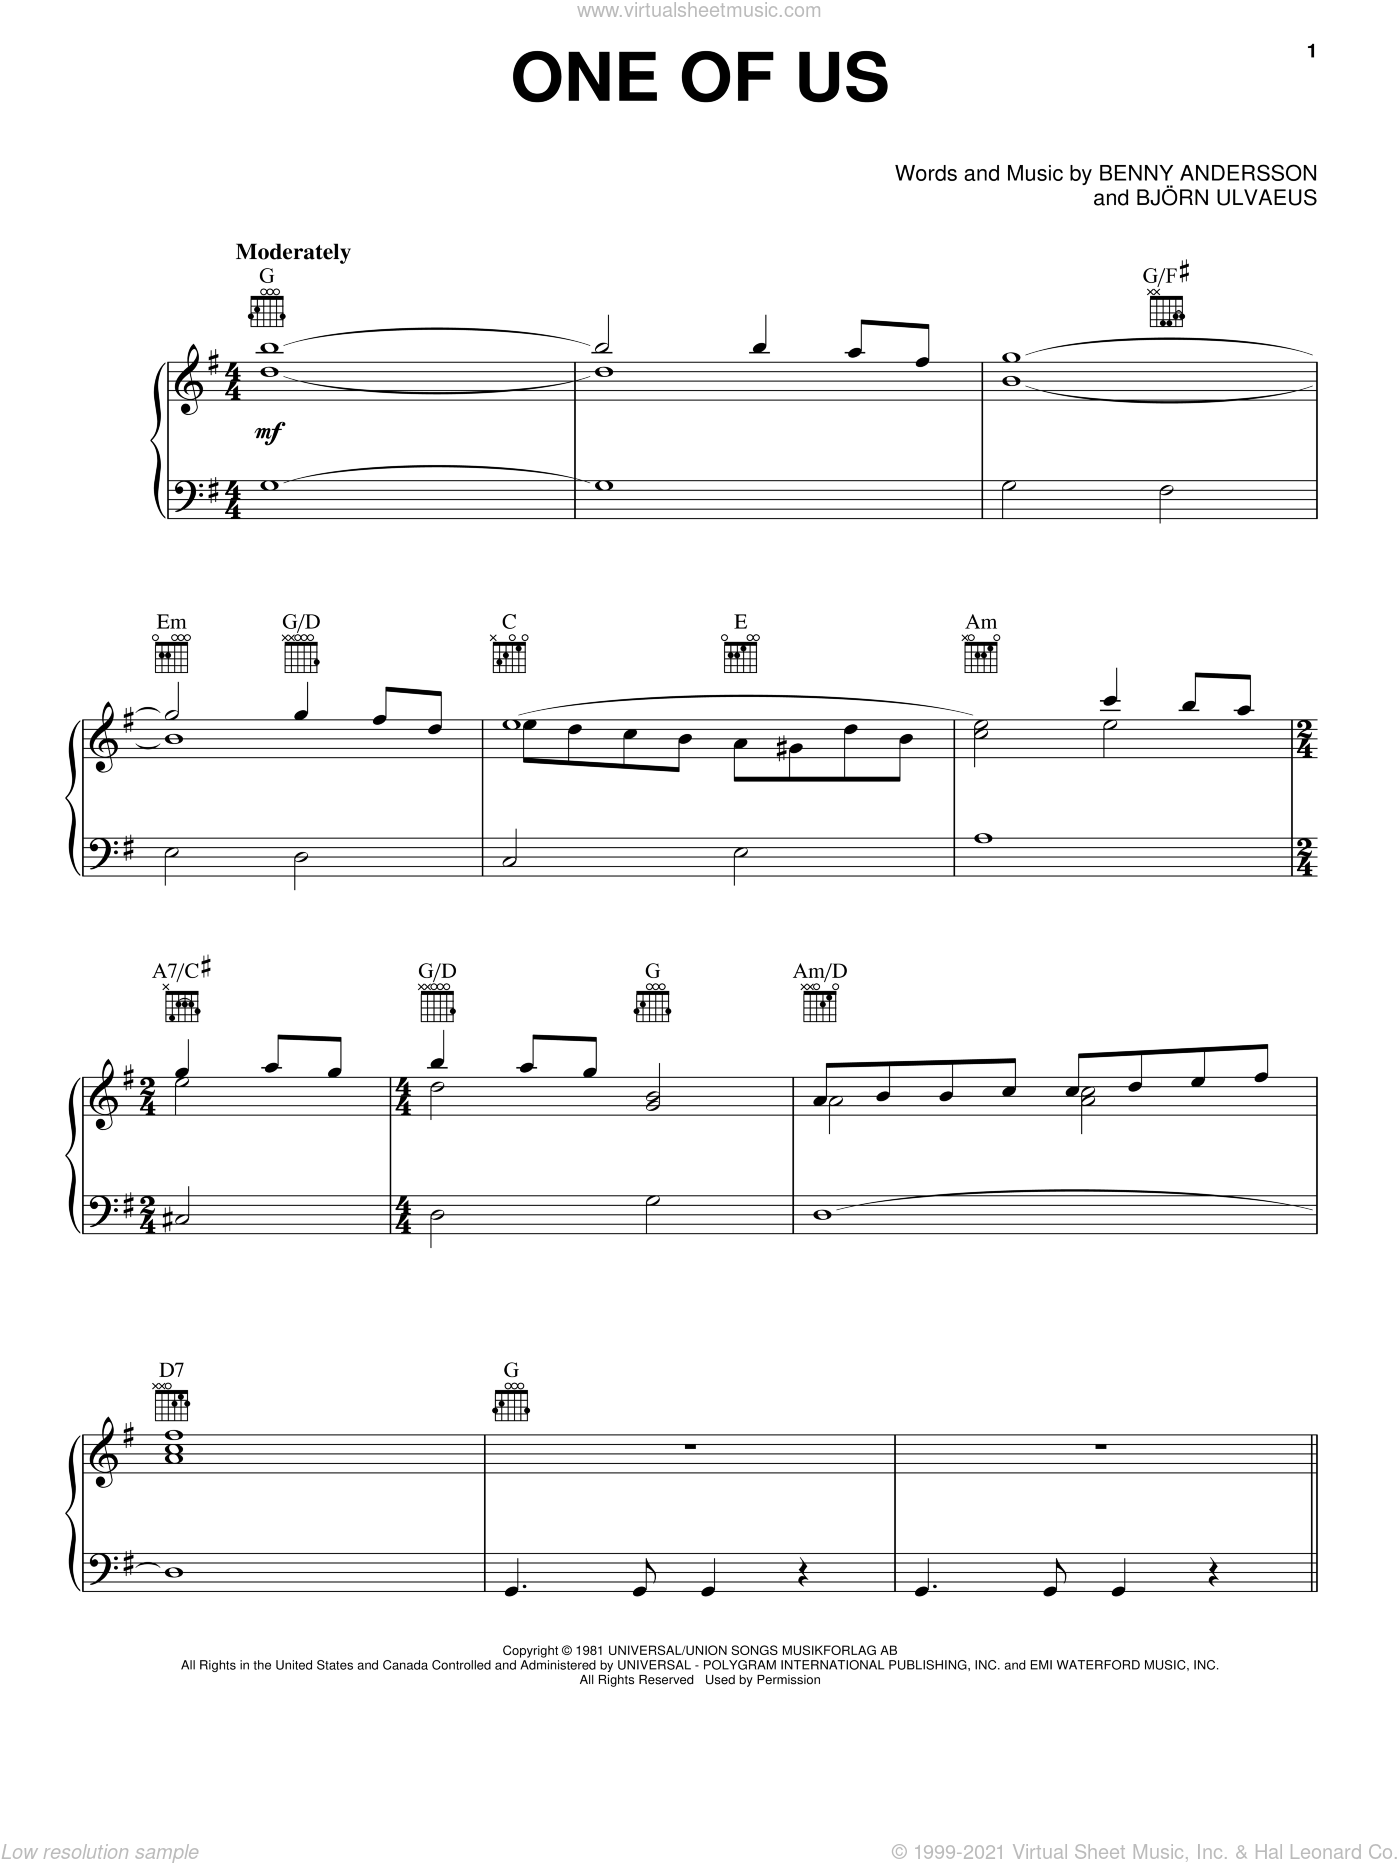 One Of Us (from Mamma Mia! Here We Go Again) sheet music for voice, piano or guitar by ABBA, Benny Andersson and Bjorn Ulvaeus, intermediate skill level